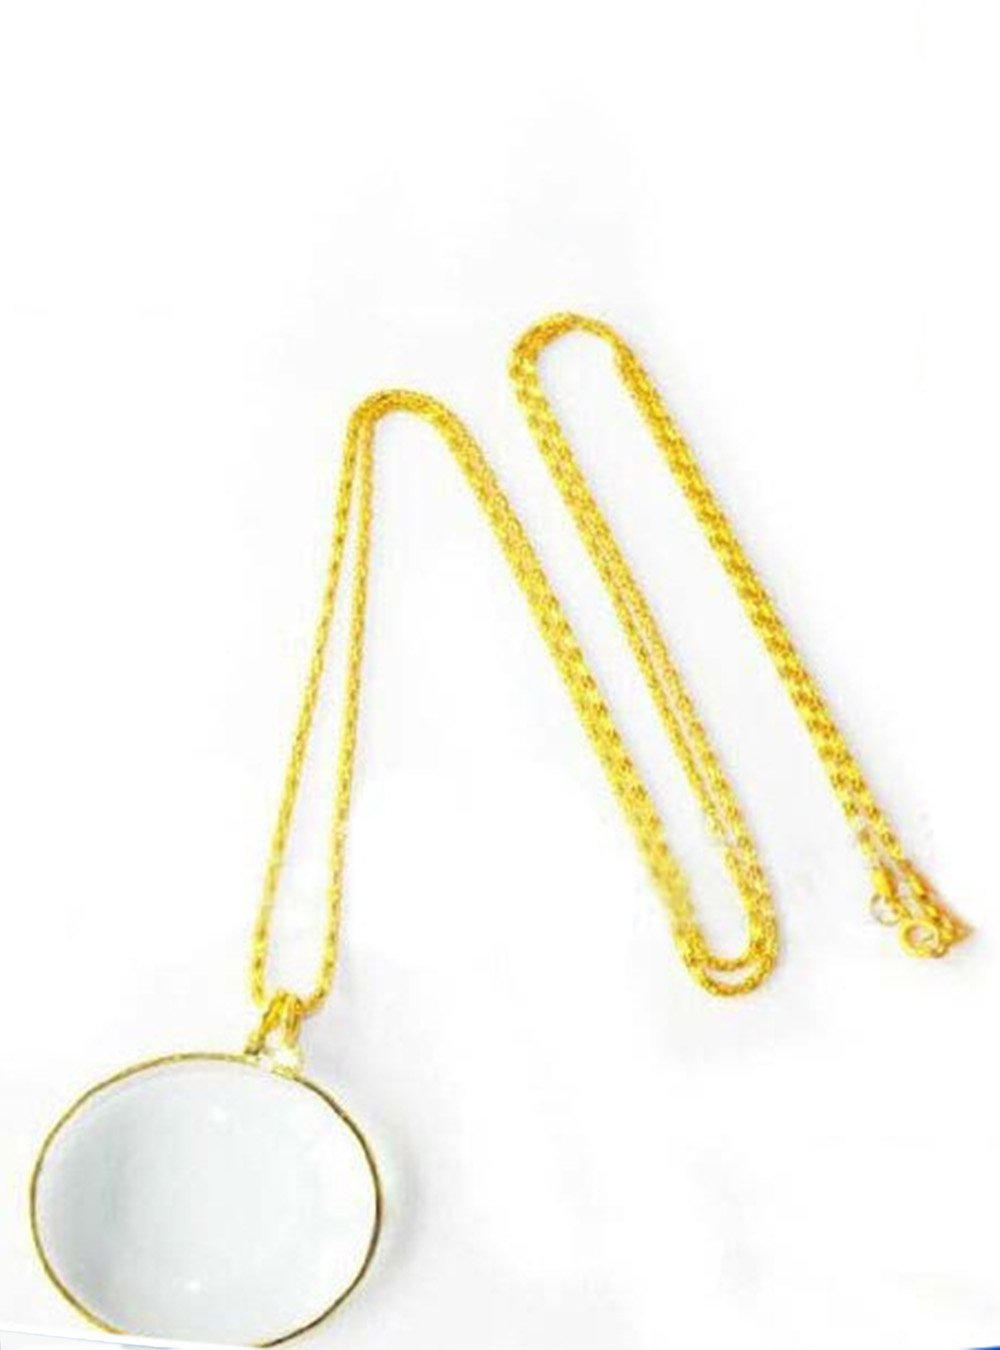 Snowmanna-1PC 5X Magnifier Necklace Magnifying Glass Pendant Optical Lens with Chain Jewelry Loupe for Elders Reading, Increase Vision (Silver)